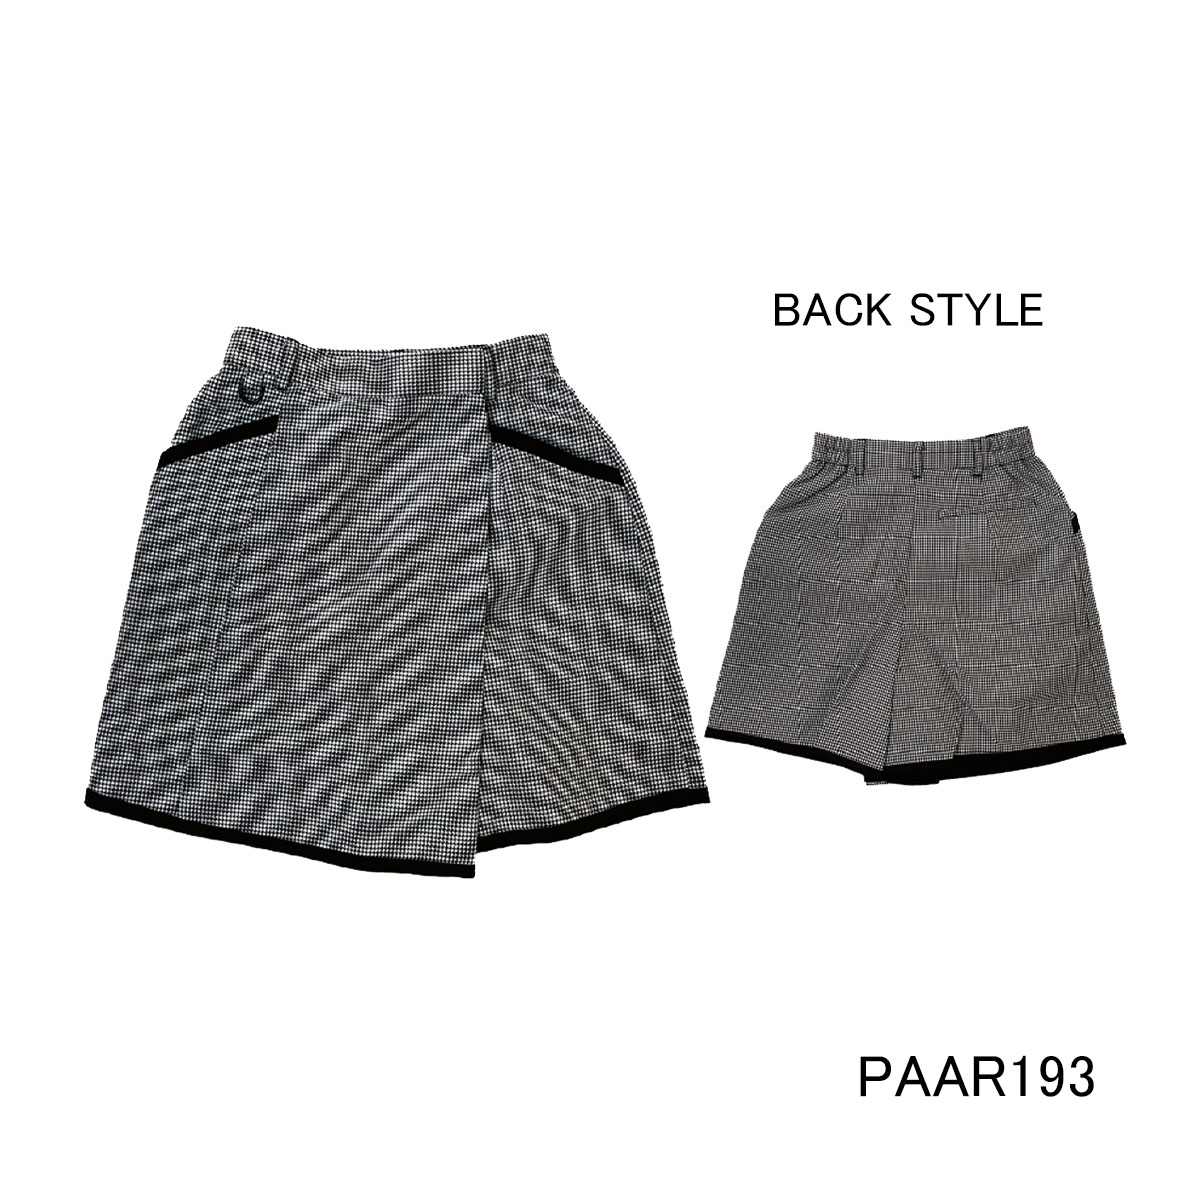 ■ABS ウェア■ 【受注生産品】【ABS】PAAR193 ラップキュロット